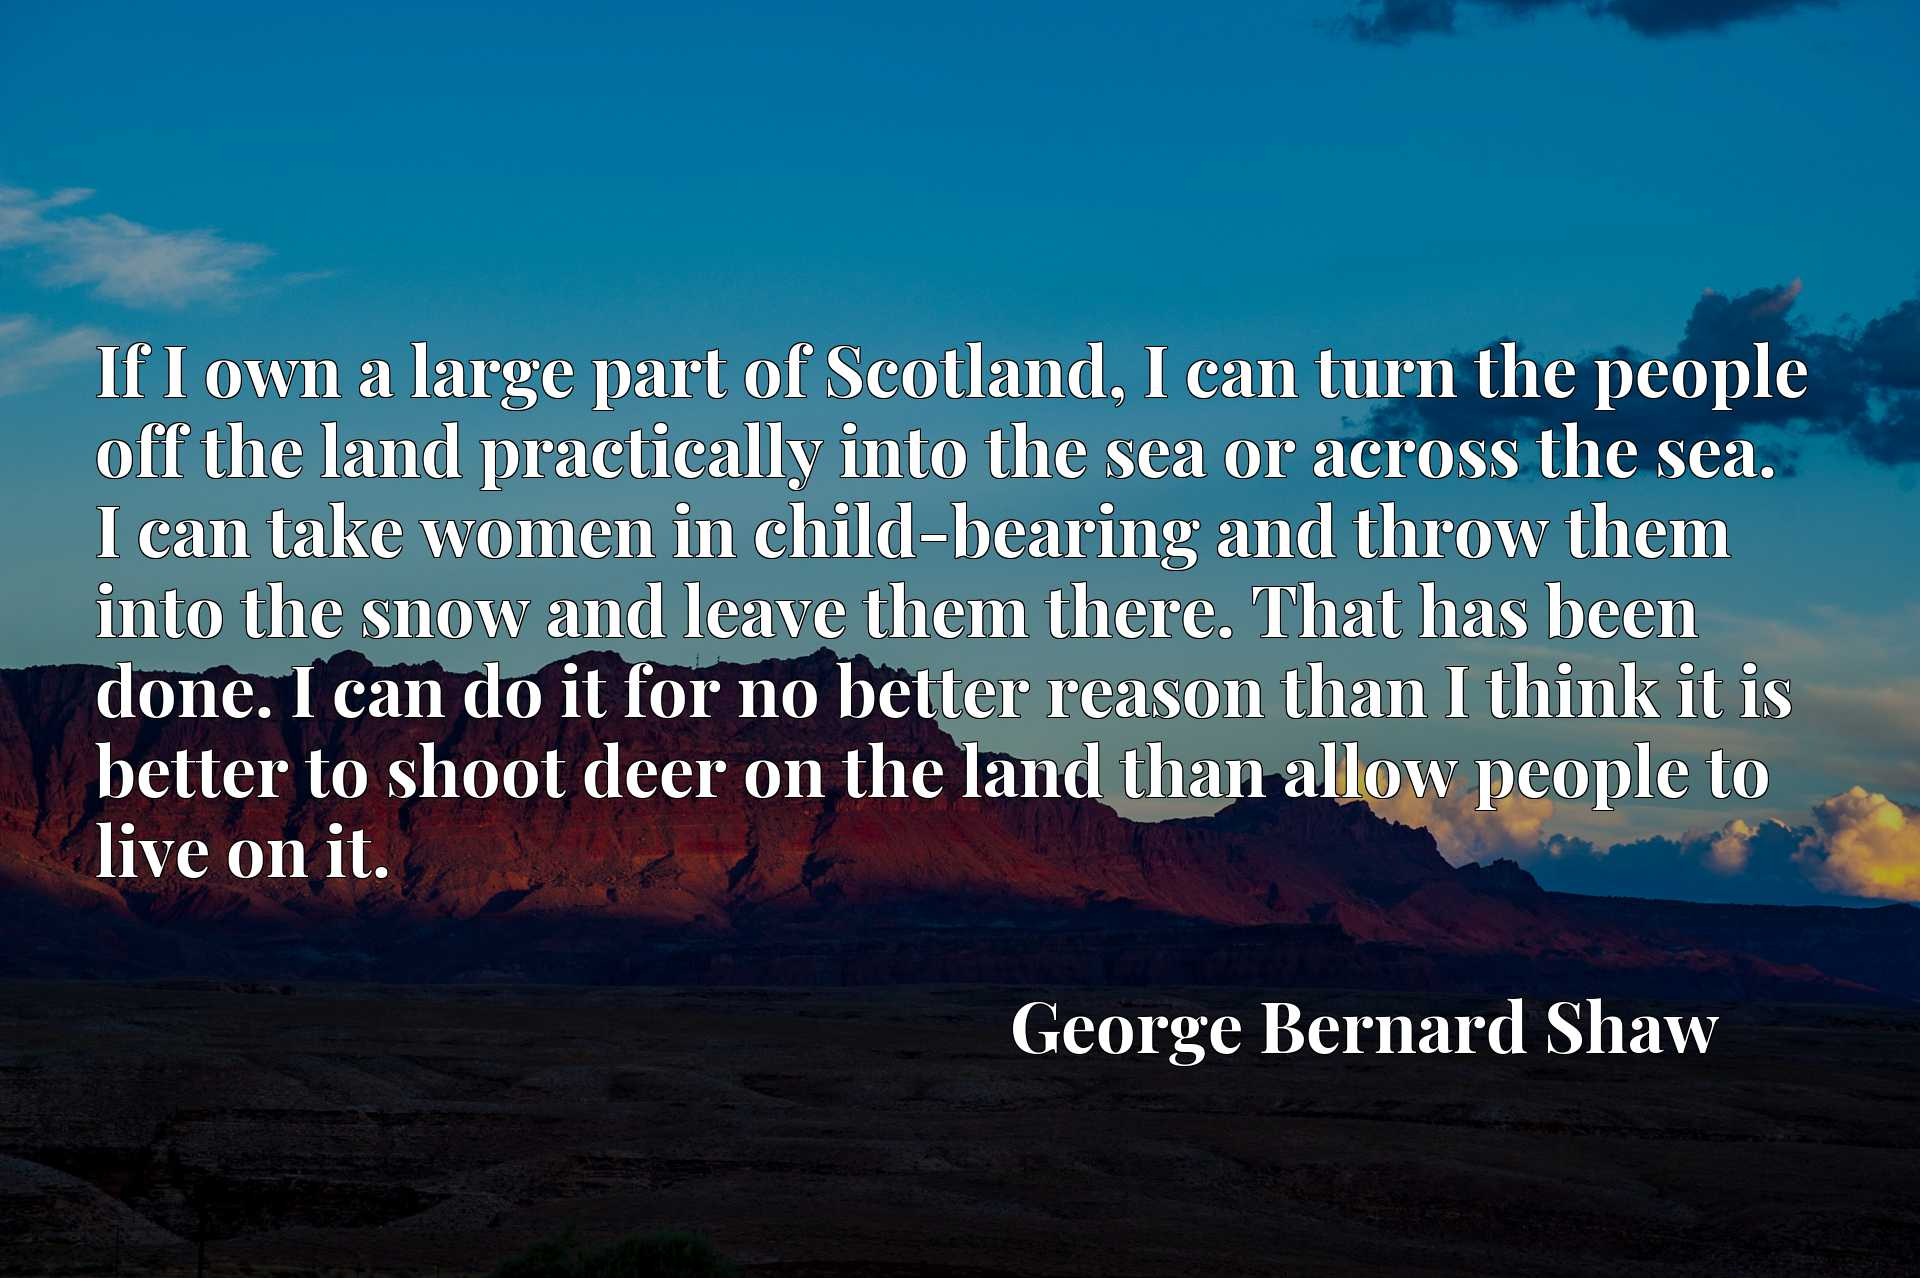 If I own a large part of Scotland, I can turn the people off the land practically into the sea or across the sea. I can take women in child-bearing and throw them into the snow and leave them there. That has been done. I can do it for no better reason than I think it is better to shoot deer on the land than allow people to live on it.